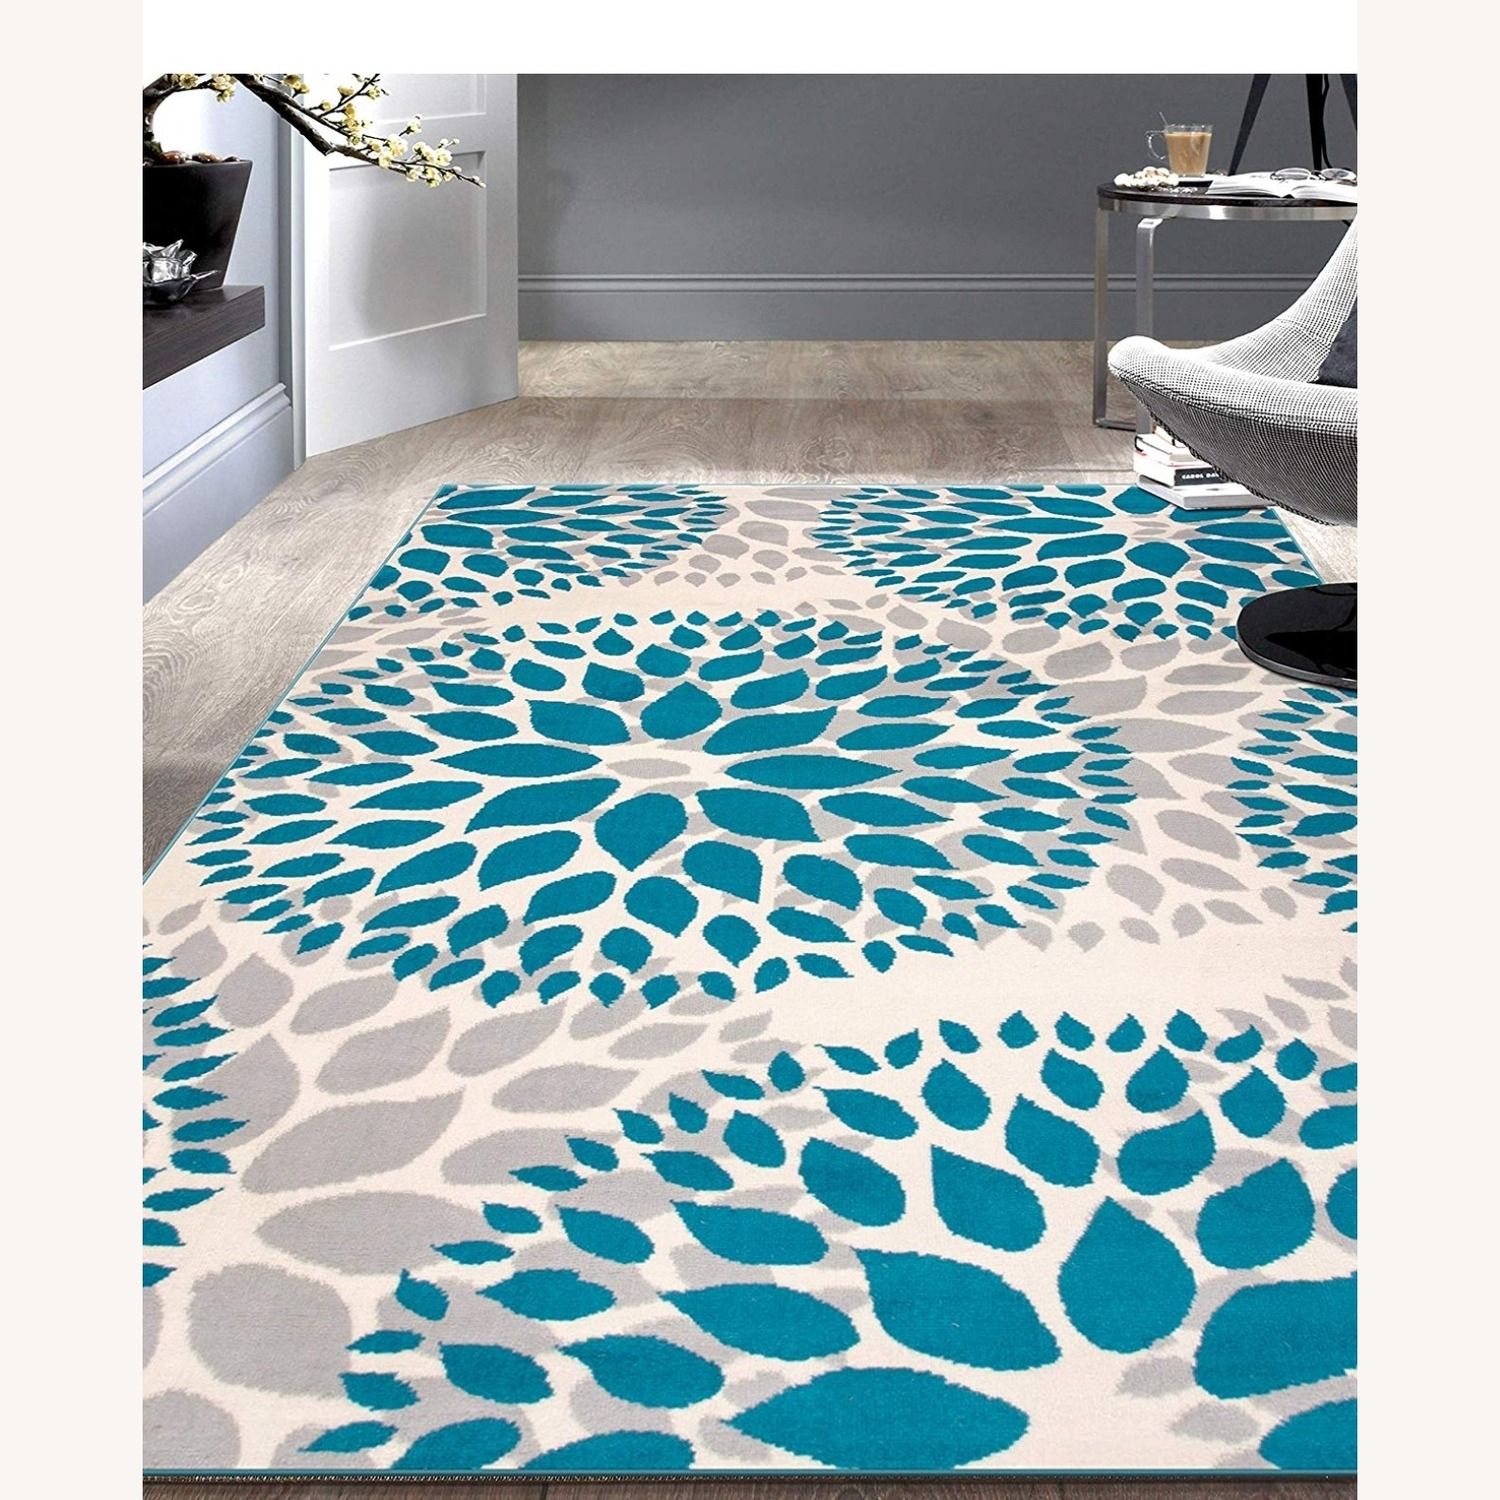 Safavieh Gray and Teal Area Rug - image-1